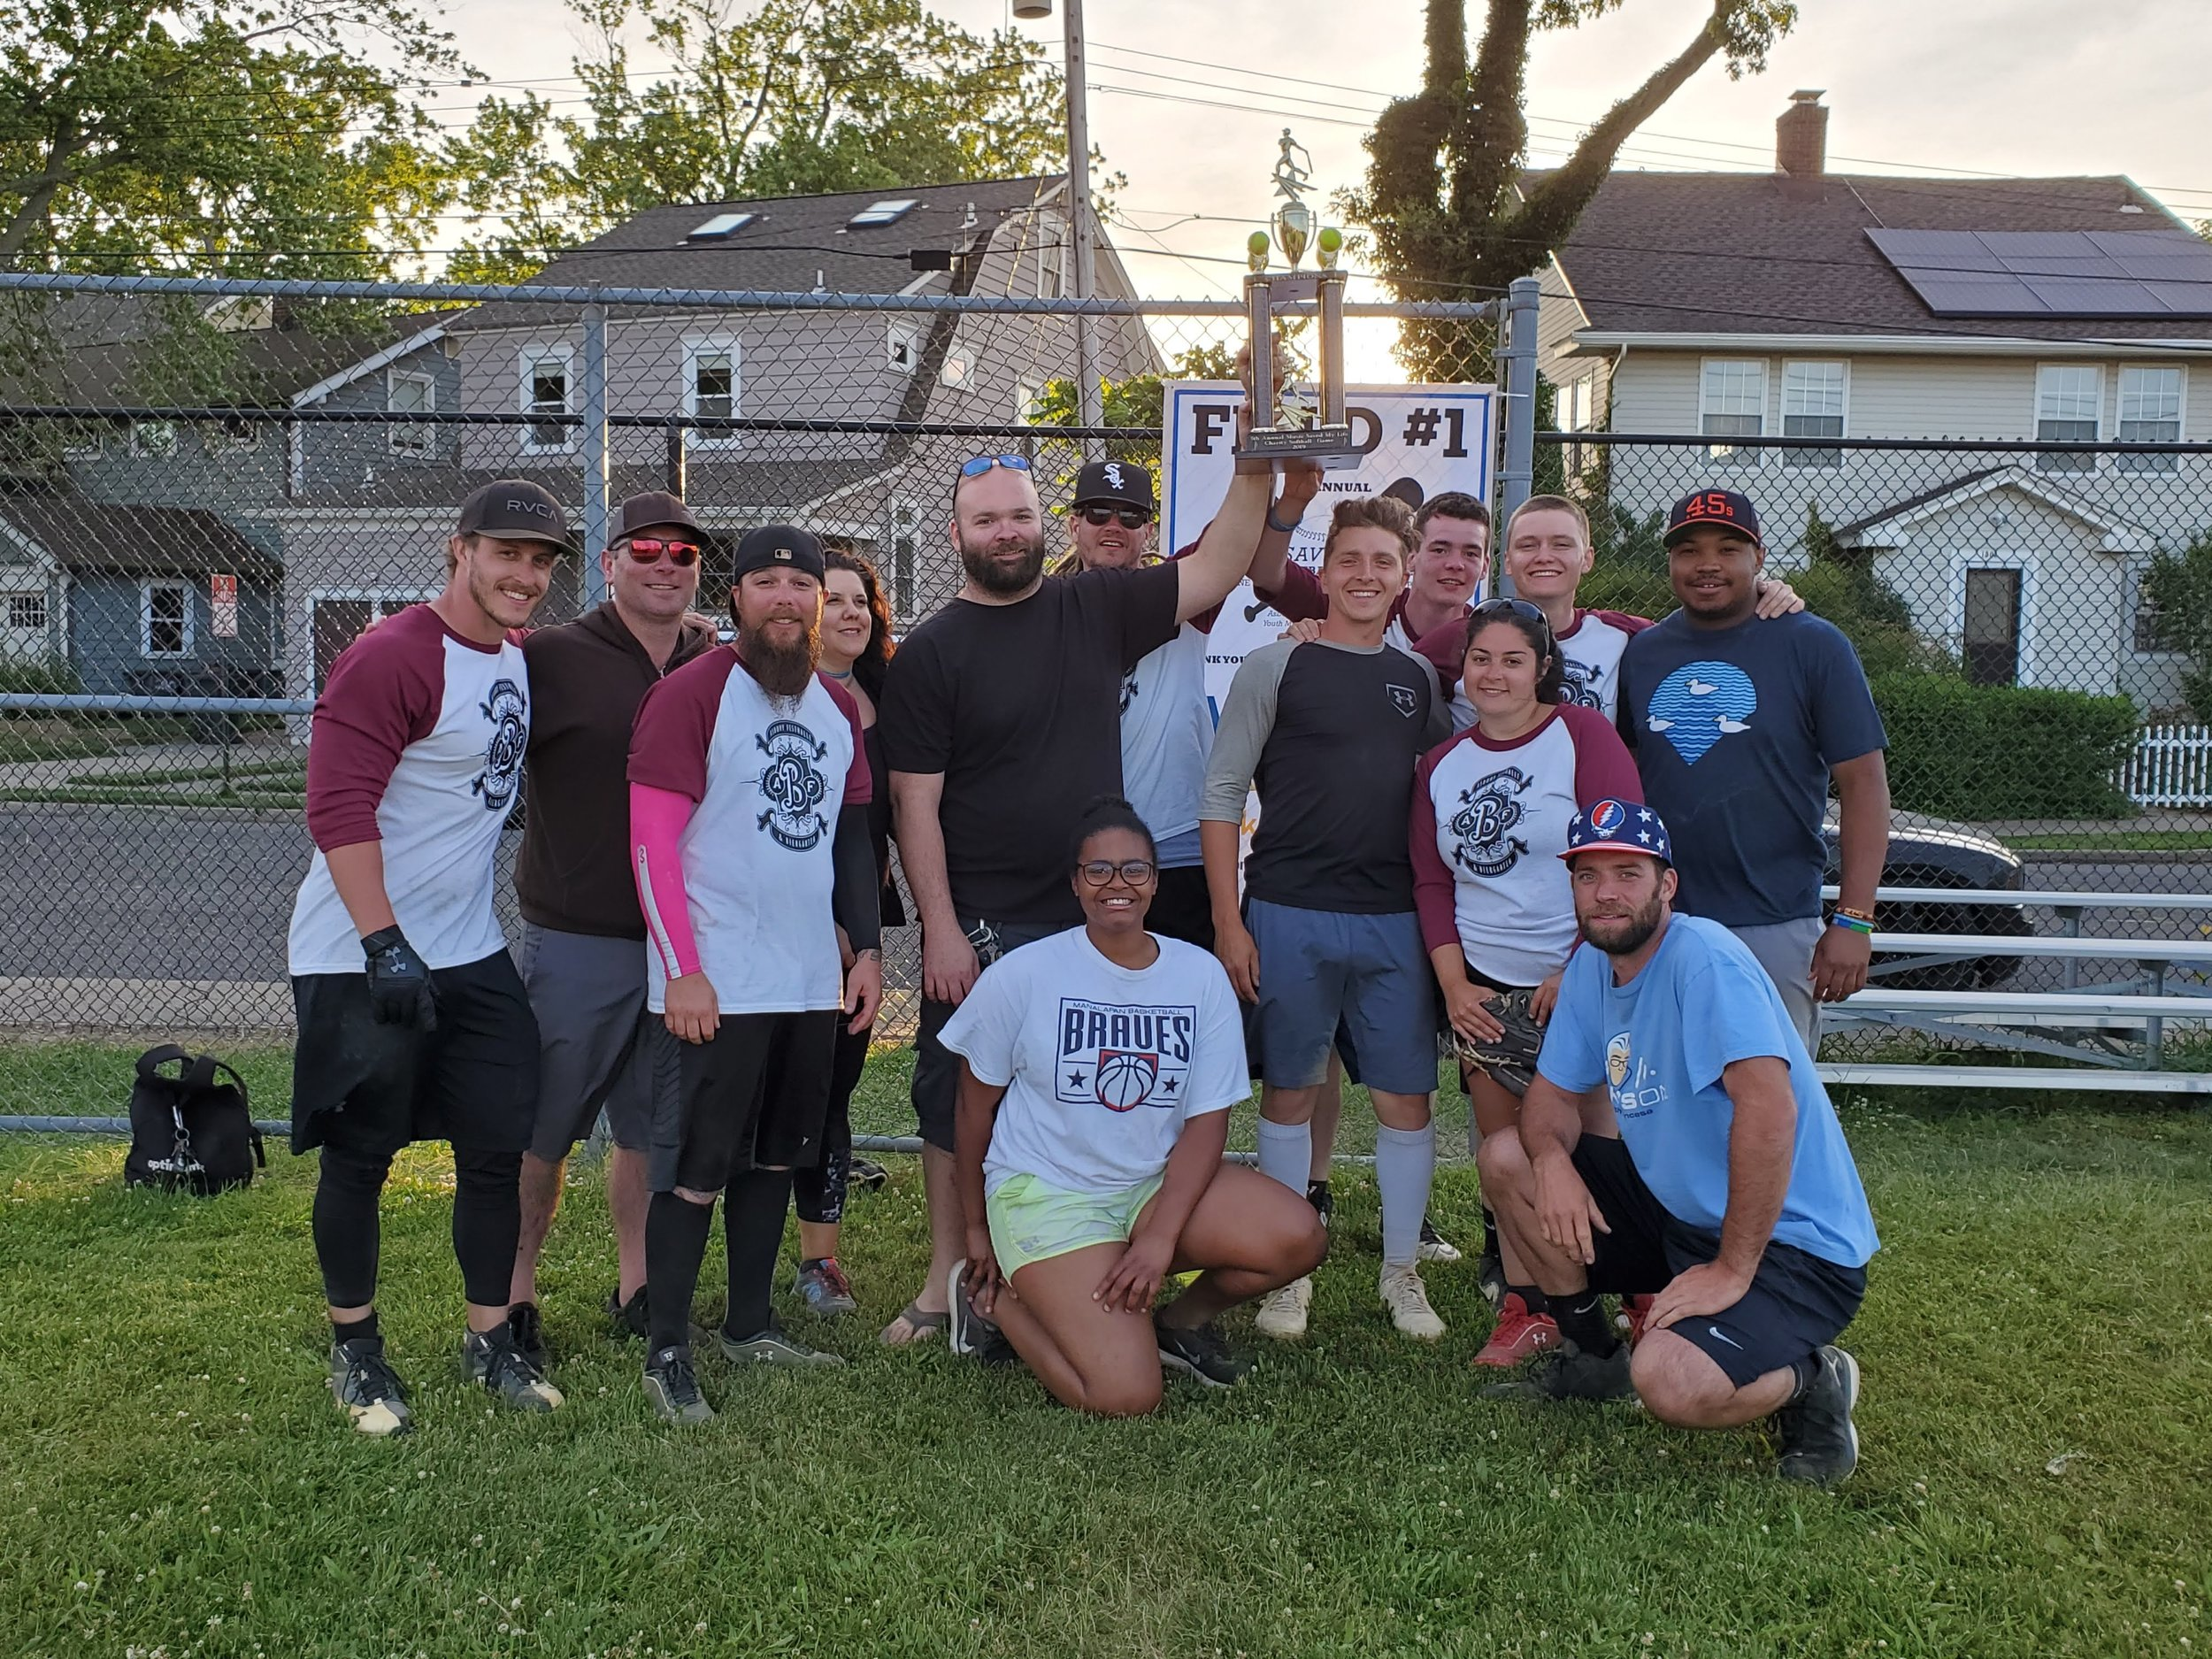 Congratulations to the Asbury Biergarten on winning the 5th Annual Music Saved My Life Annual Softball Tournament!